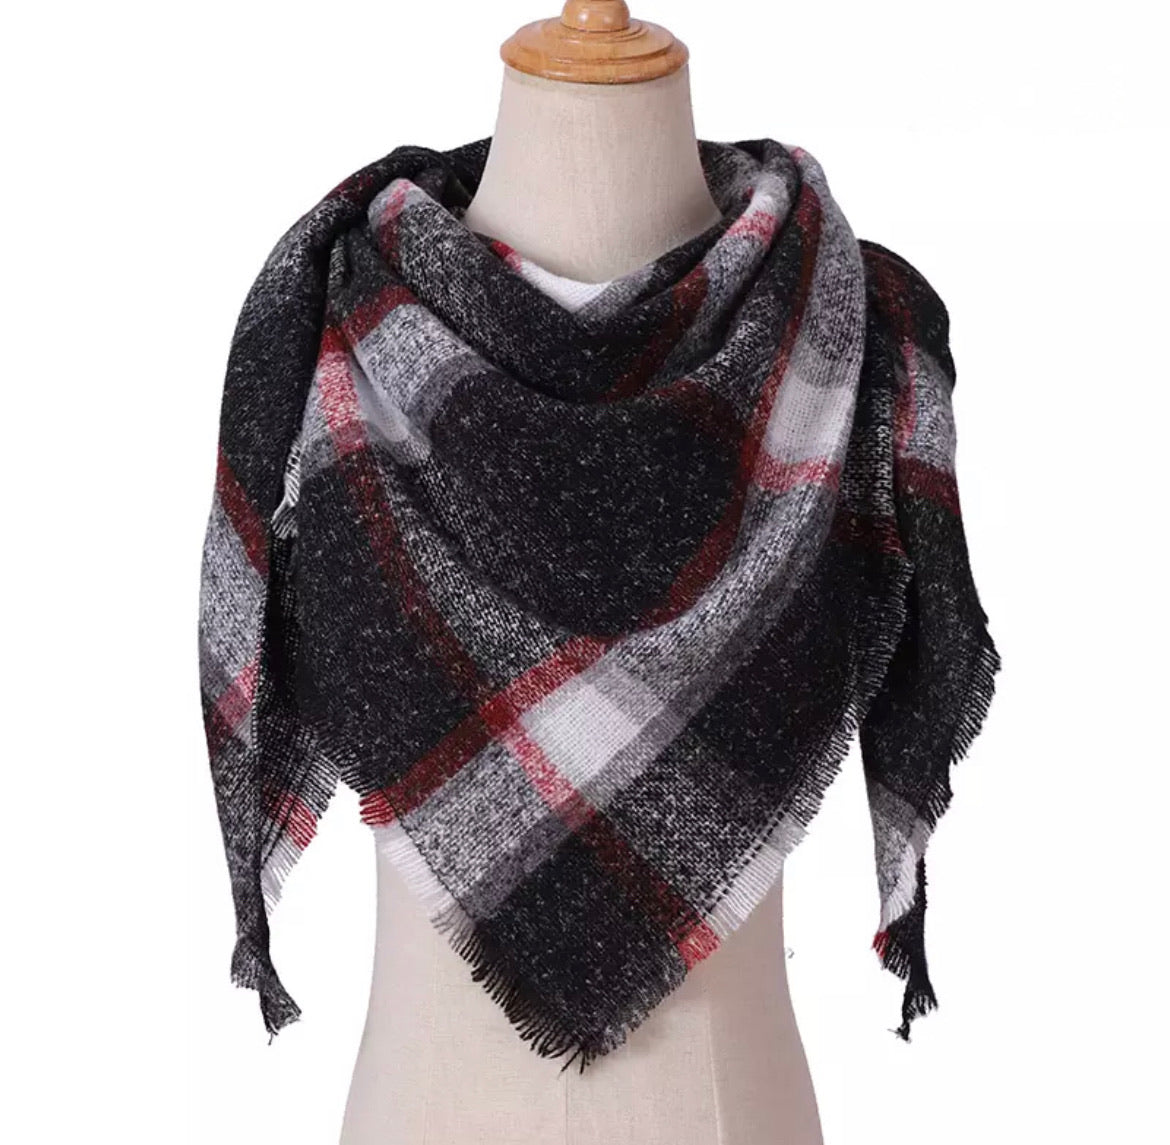 Black Burgundy White Gray Plaid Triangle Blanket Scarf